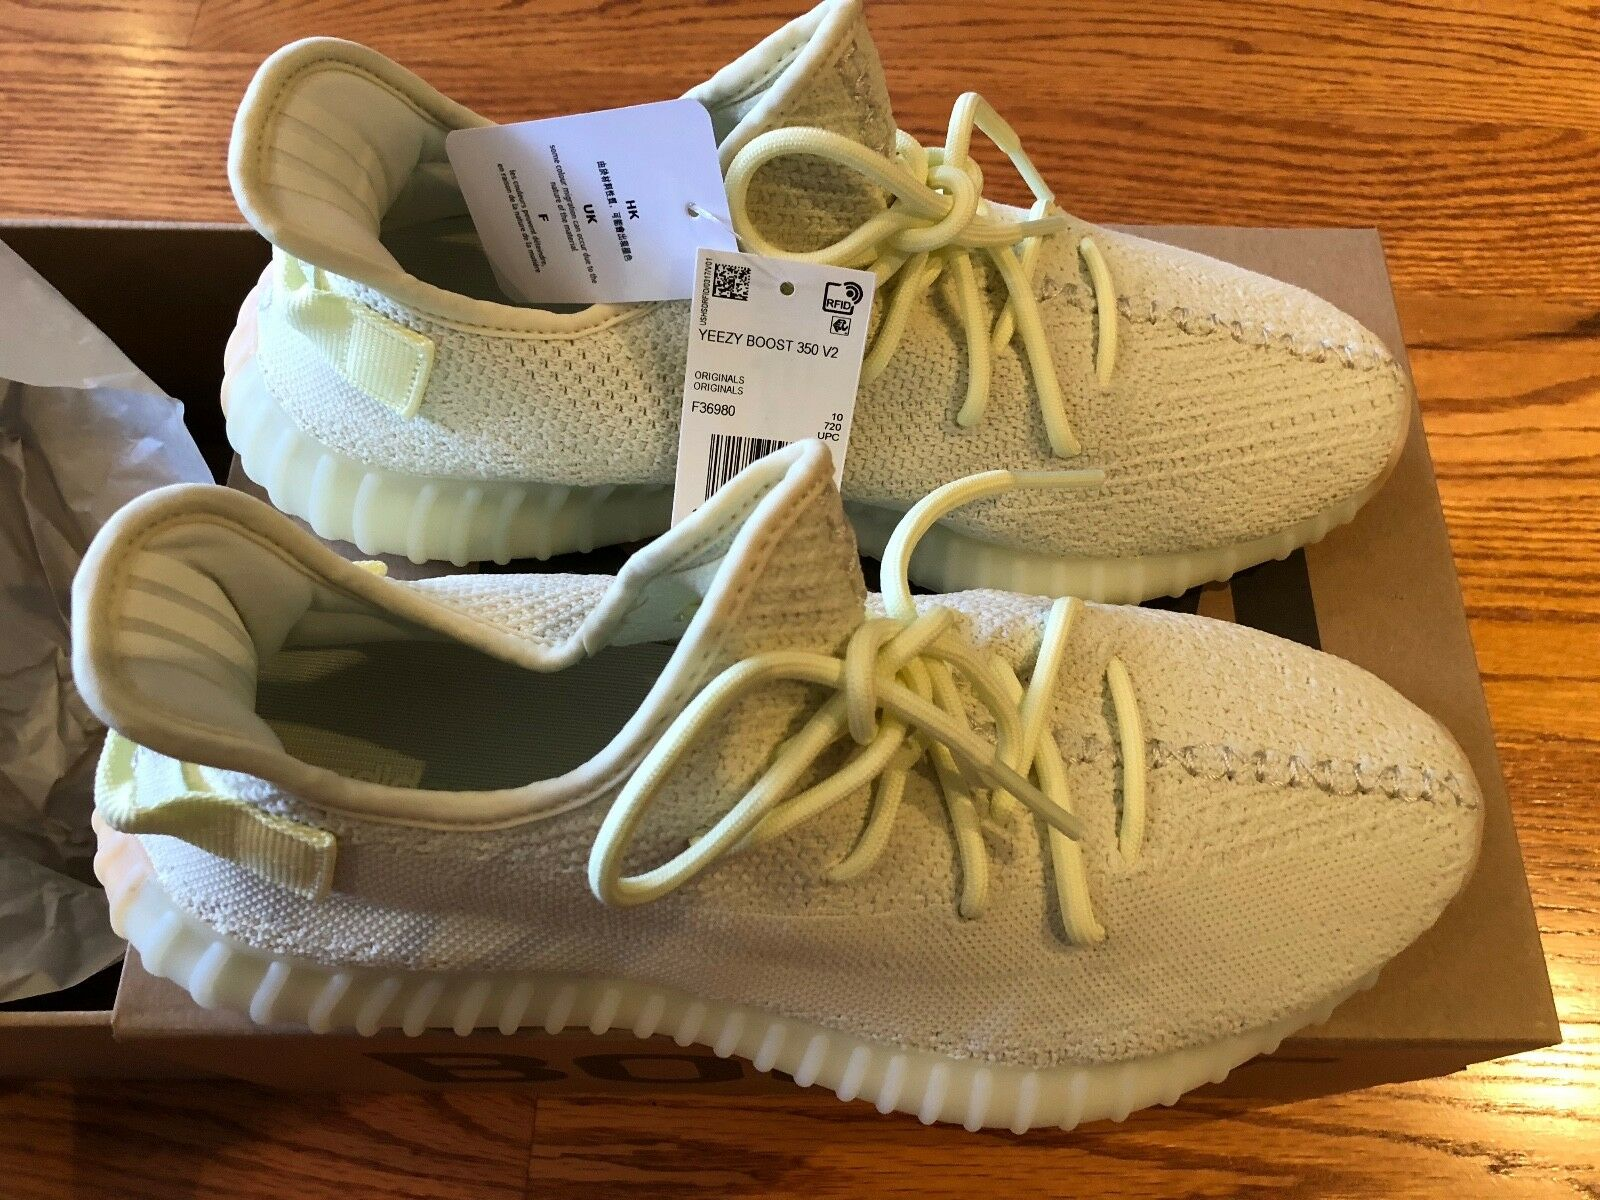 Adidas Yeezy Boost 350 V2 Butter Taille: 10.5 w / Receipt (Adidas Store)